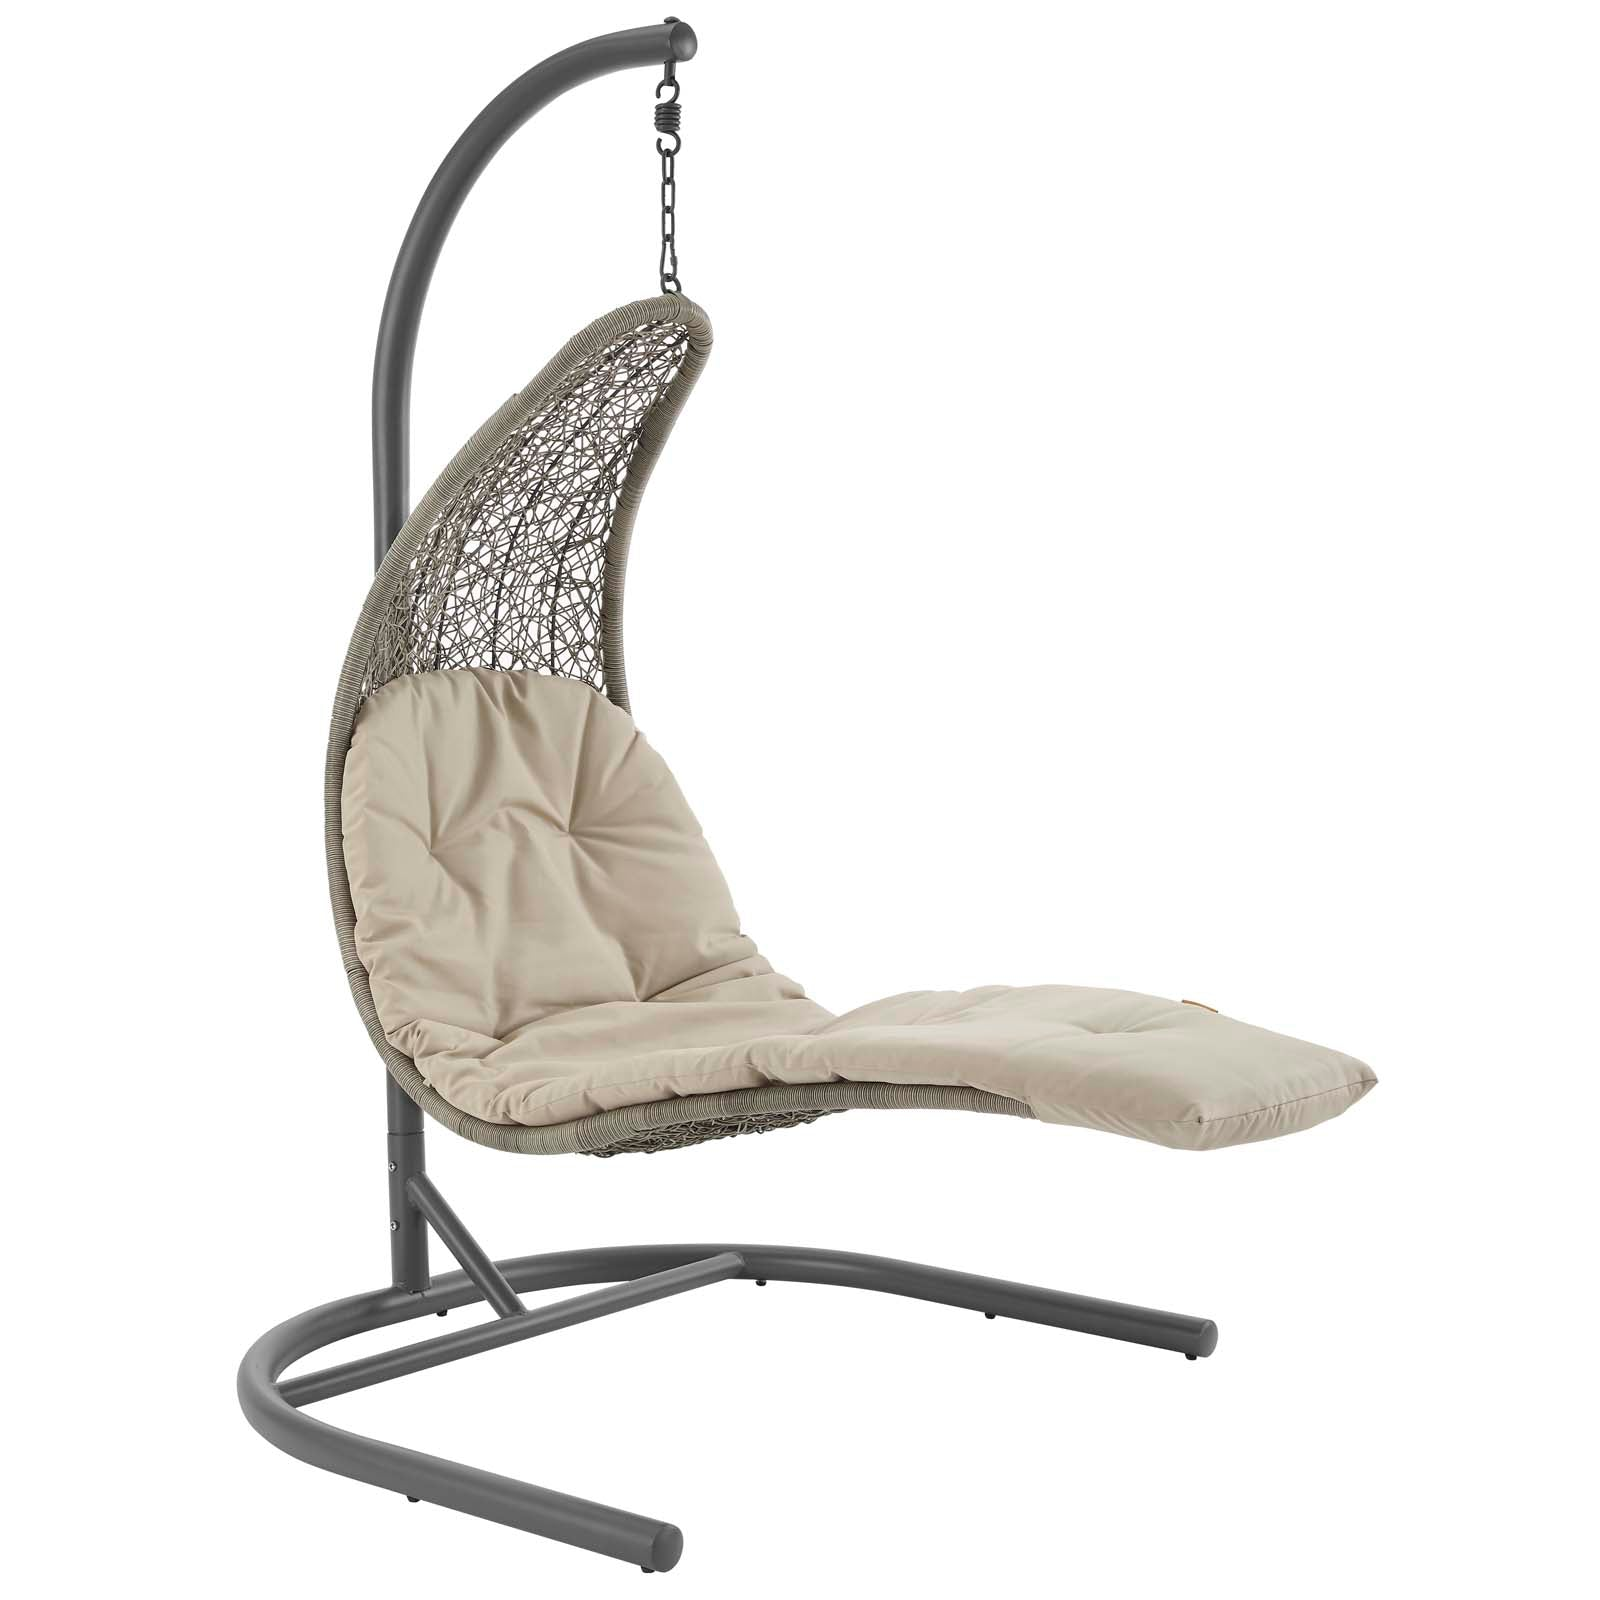 Strange Modway Outdoor Lounge Chairs On Sale Eei 2952 Lgr Bei Landscape Hanging Chaise Lounge Outdoor Patio Swing Chair Only Only 623 05 At Contemporary Inzonedesignstudio Interior Chair Design Inzonedesignstudiocom